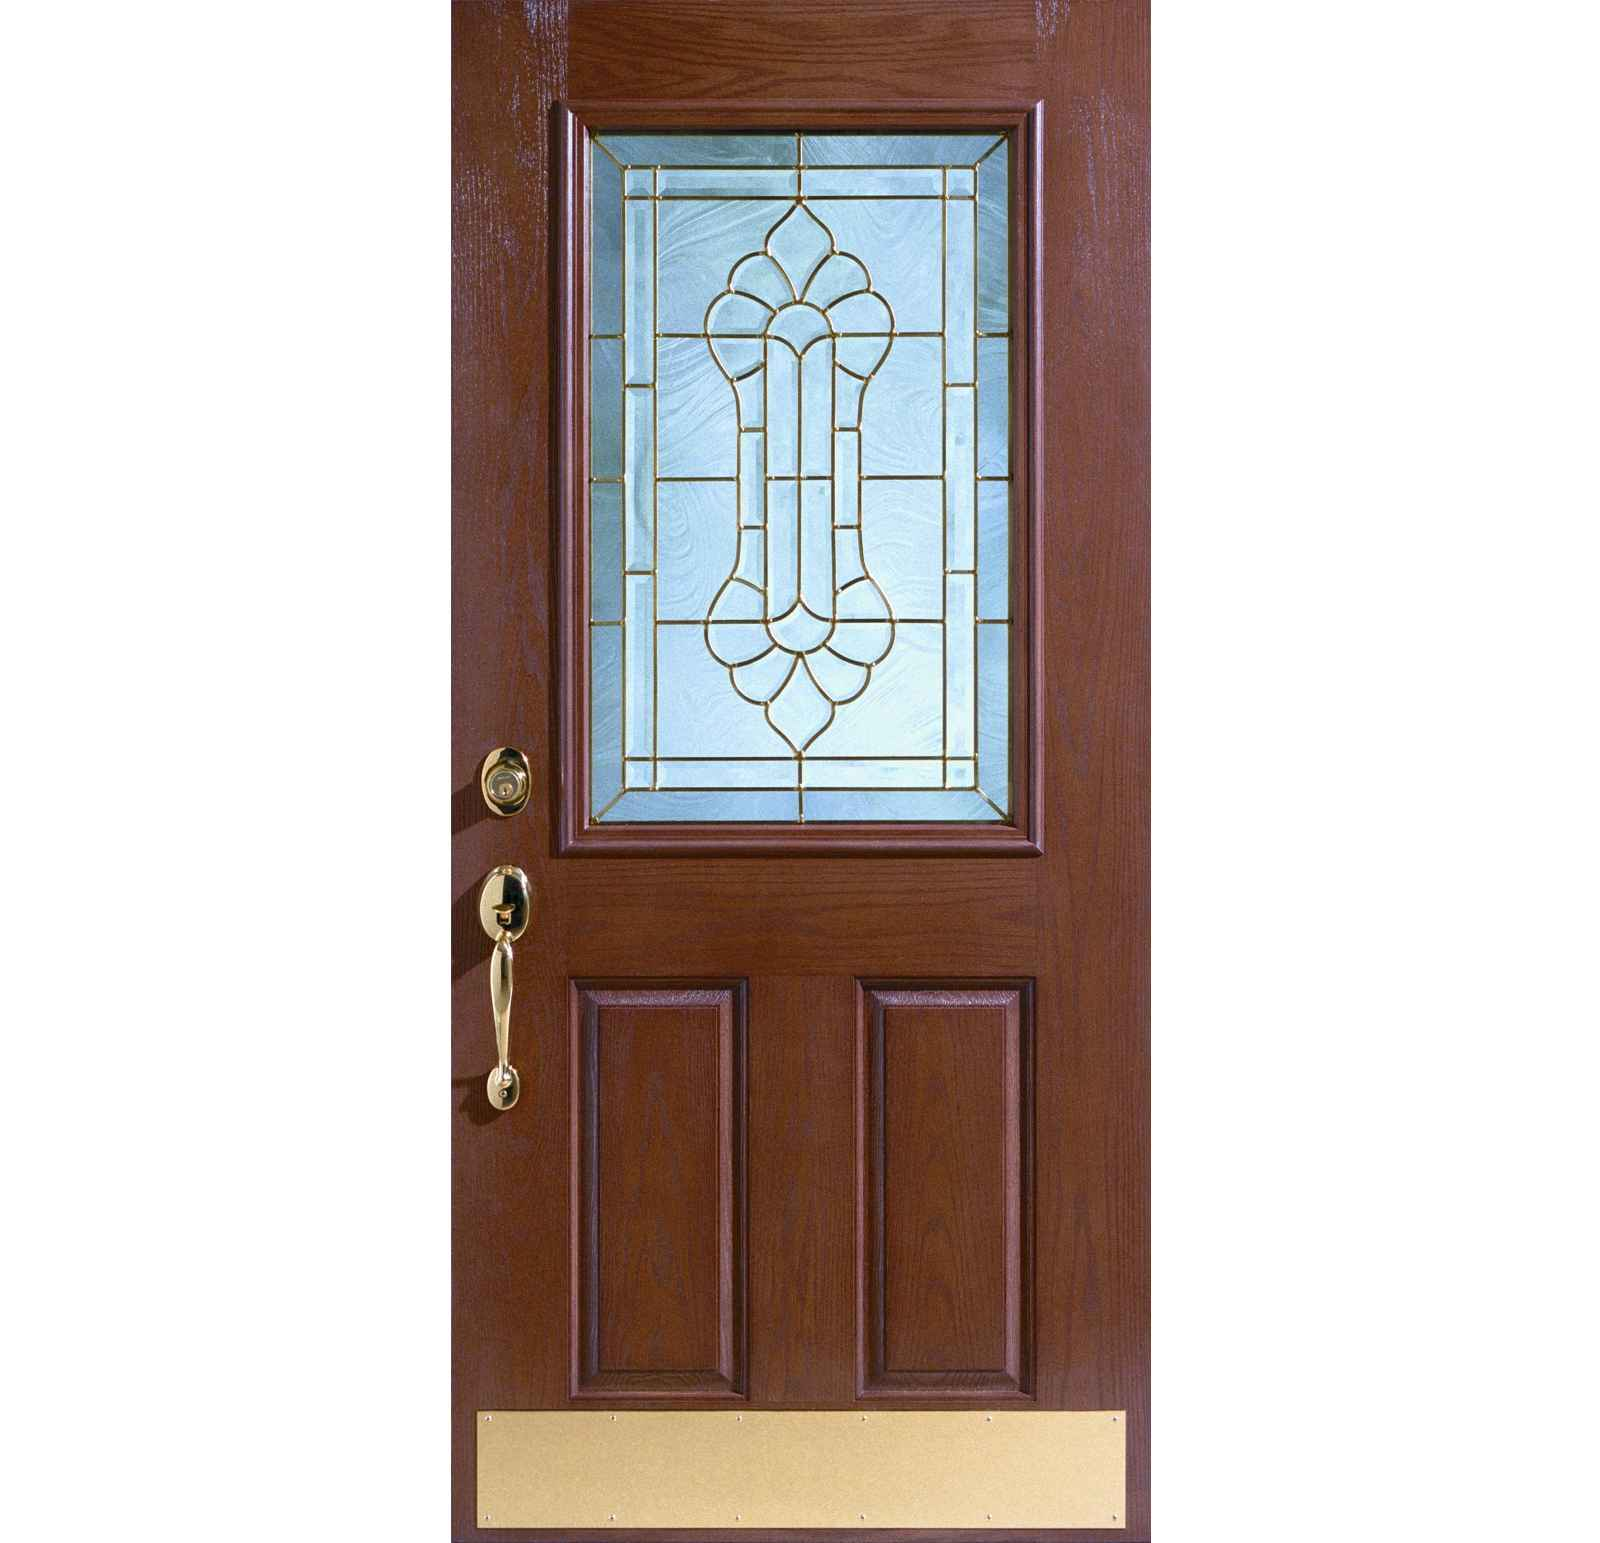 color ideas from home depot with Cheap Entry Doors With Sidelights on 300030515 additionally Carpet And Carpet Tile likewise 202206819 in addition Cc0b7777d2e5e2e2 additionally 551761391817808066.